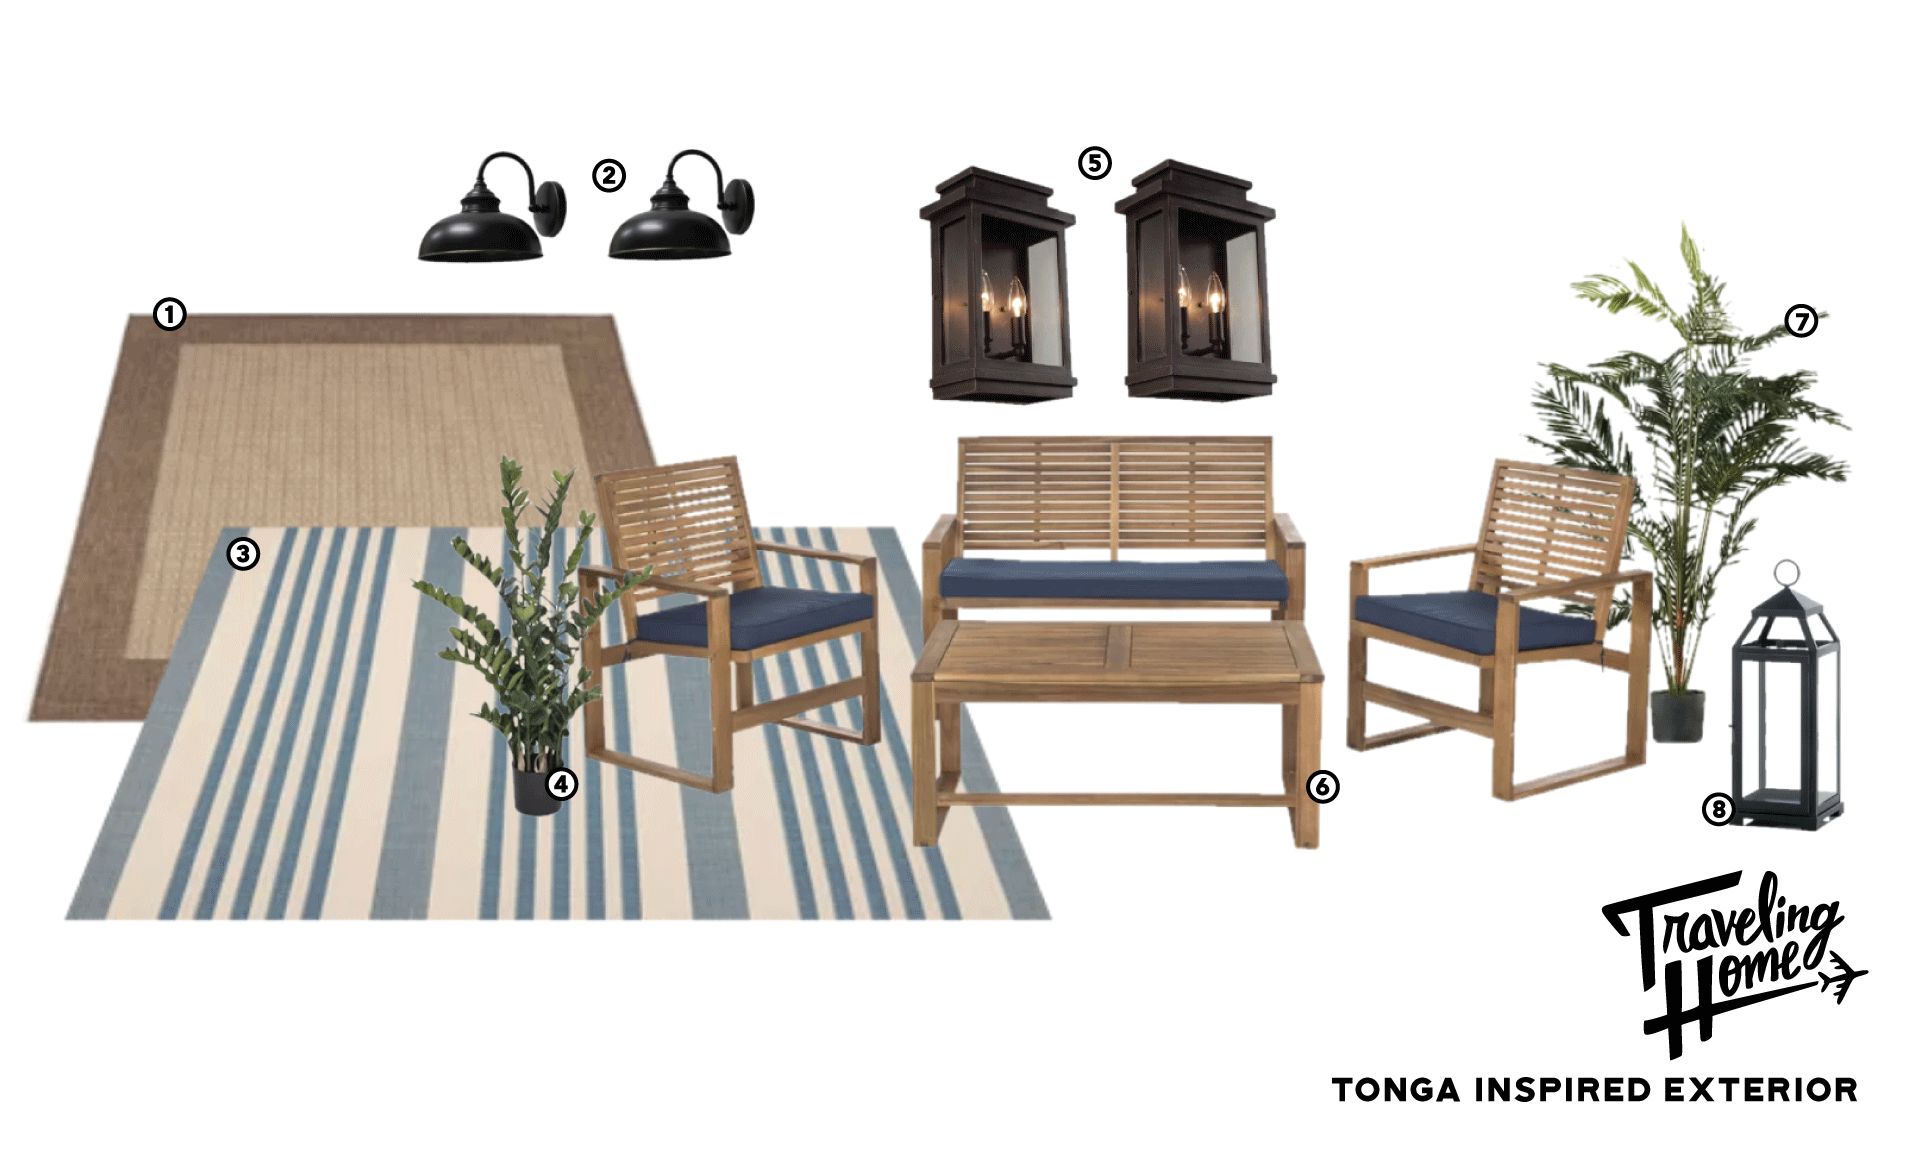 Shop Traveling Home Episode 7: Tonga Inspired Exterior